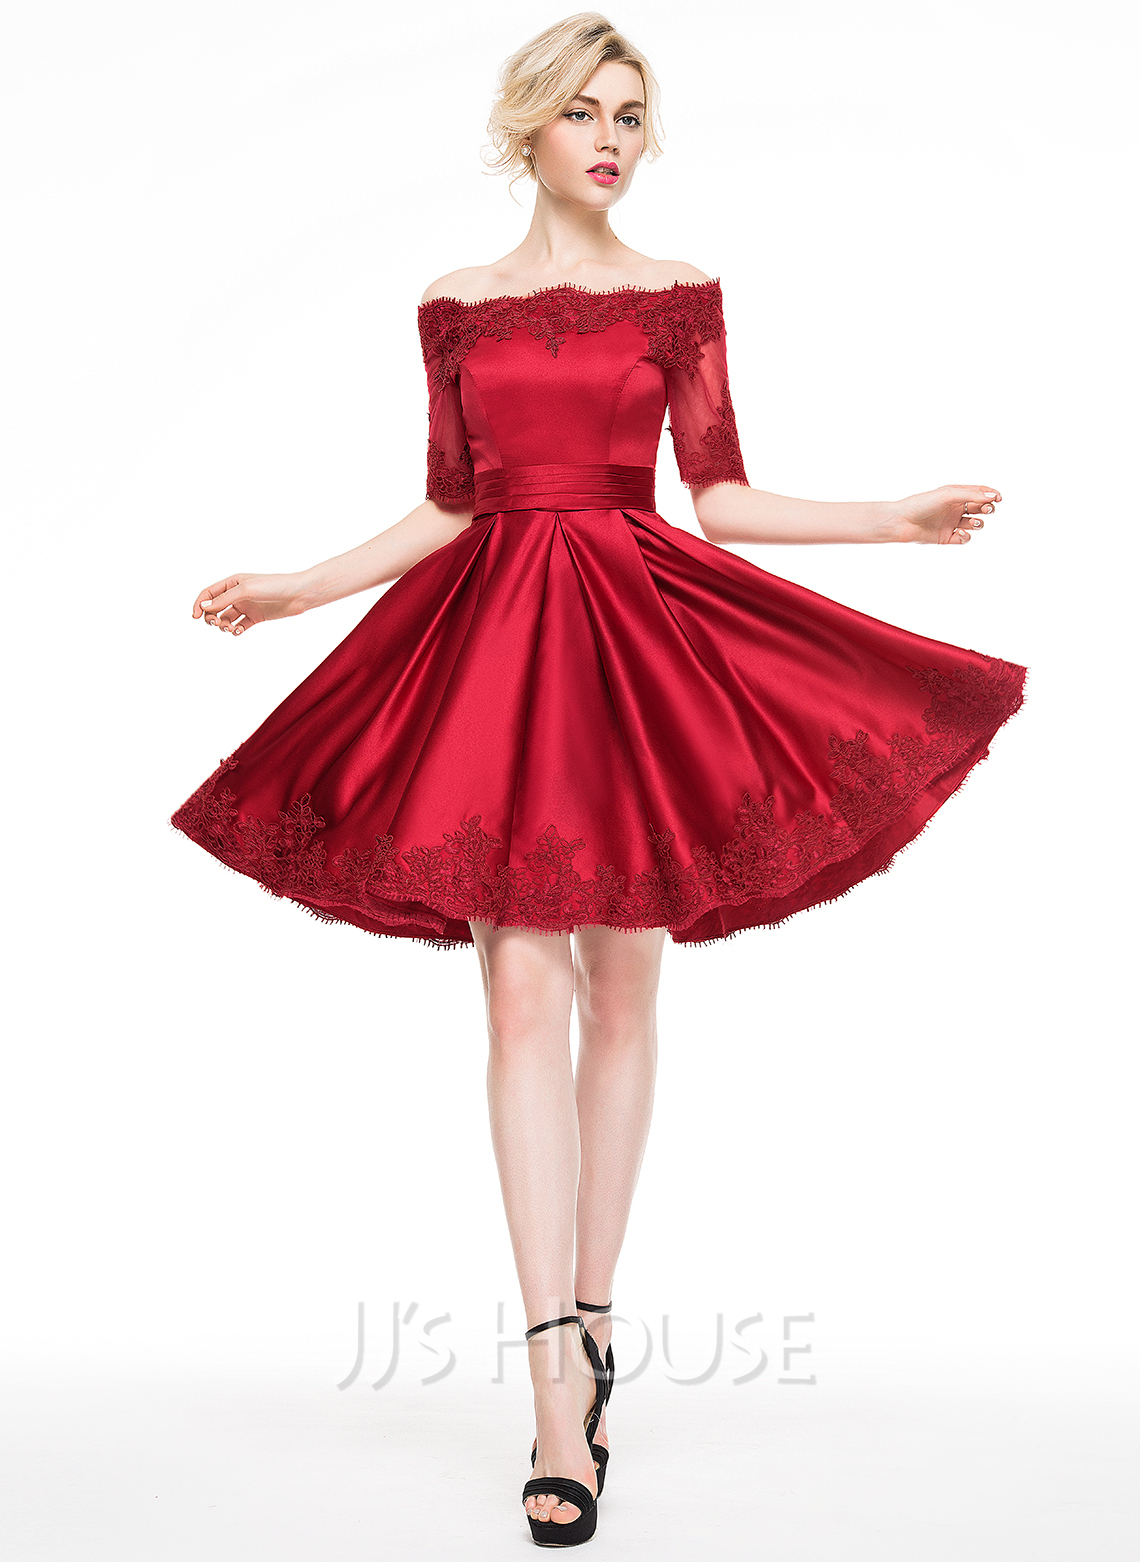 A-Line/Princess Off-the-Shoulder Knee-Length Satin Cocktail Dress With Appliques Lace (016081120 ...